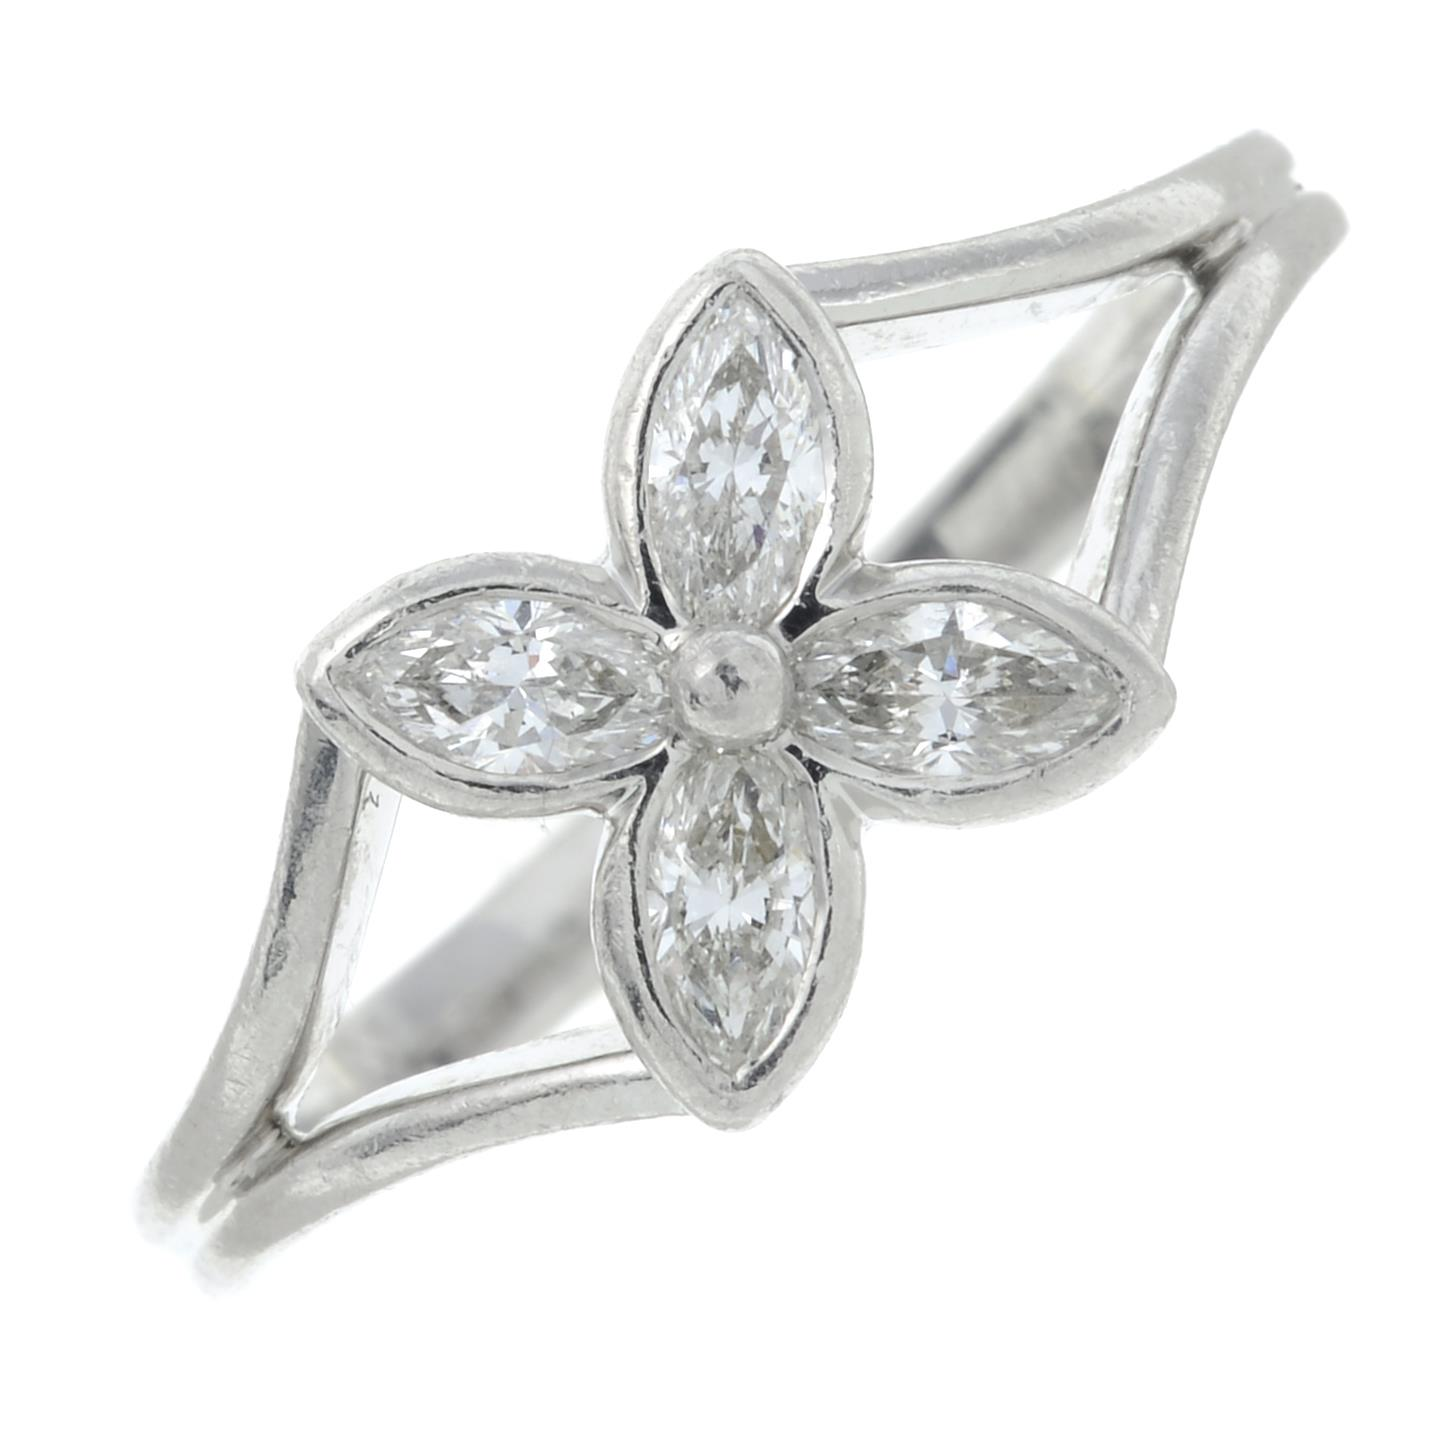 A diamond floral 'Victoria' ring, - Image 2 of 6